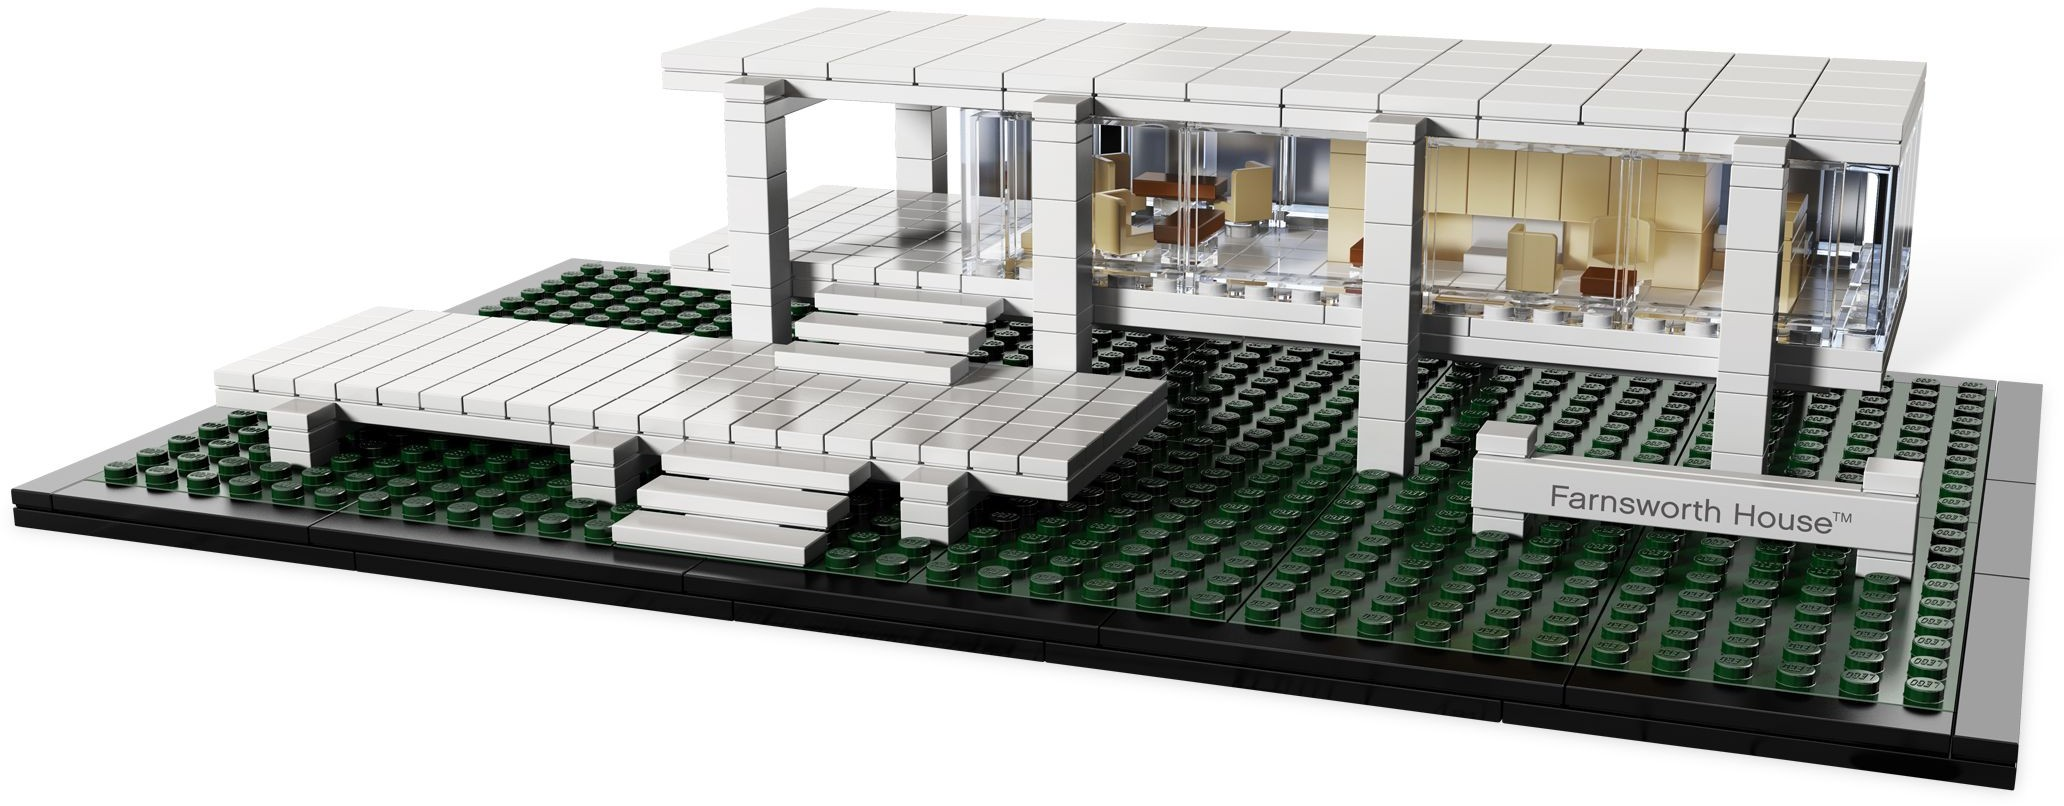 the road to the white house | brickset: lego set guide and database